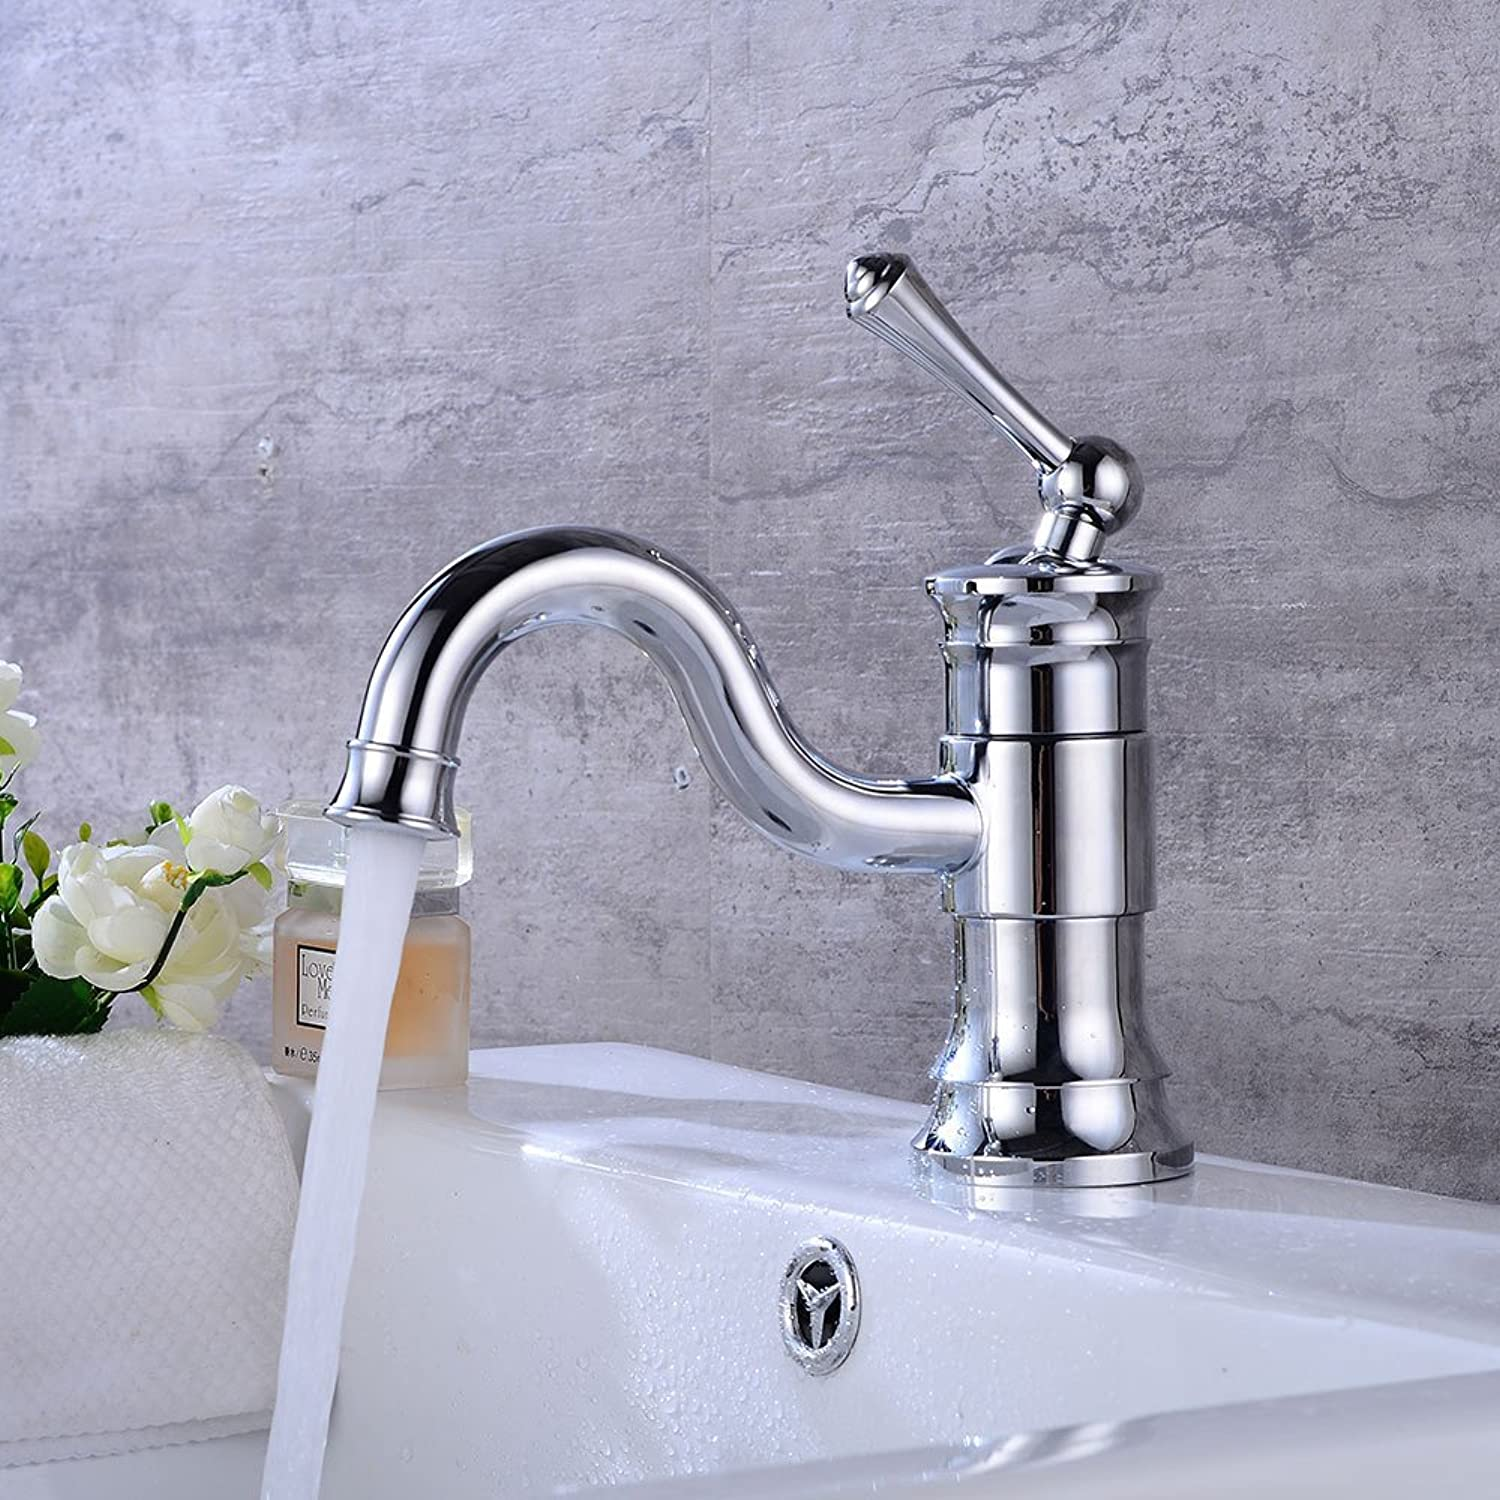 Accessori bagno ZHFC ZHFC Single hole water faucet single handle control of cold and hot mixed faucet redating faucet plating process